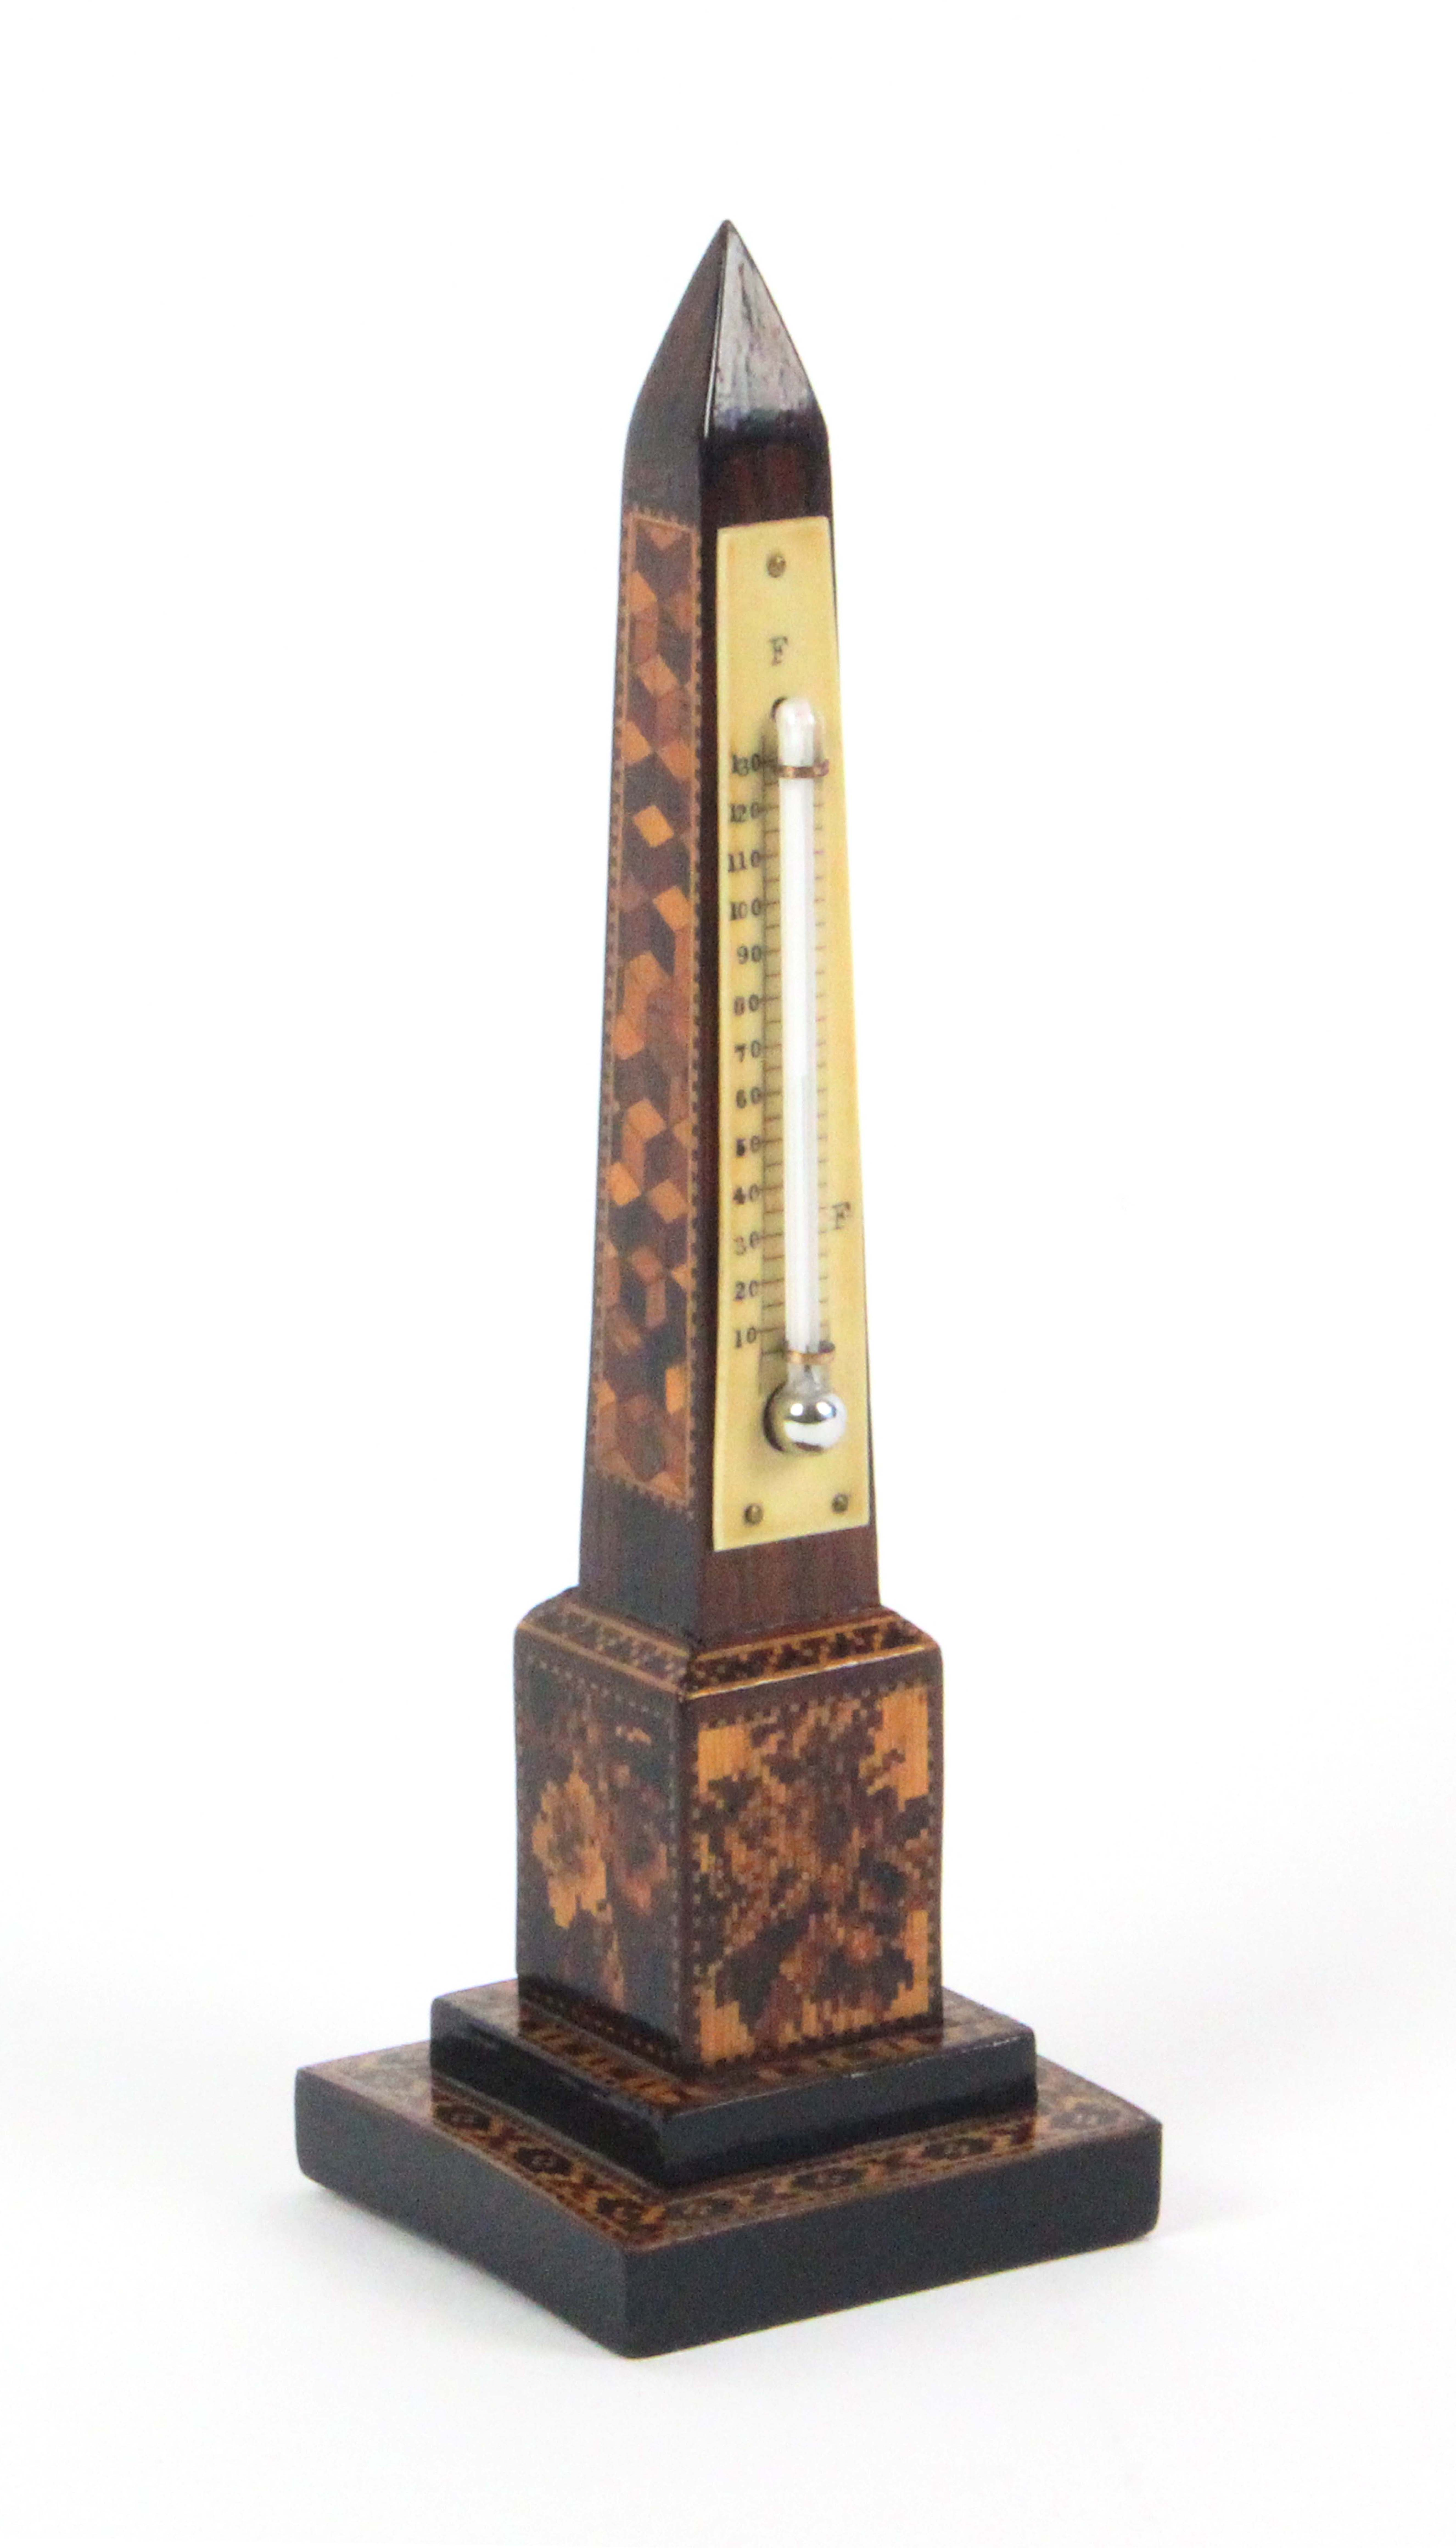 Lot 26 - A Tunbridge ware obelisk form desk thermometer, the stepped base in geometric mosaic the plinth with